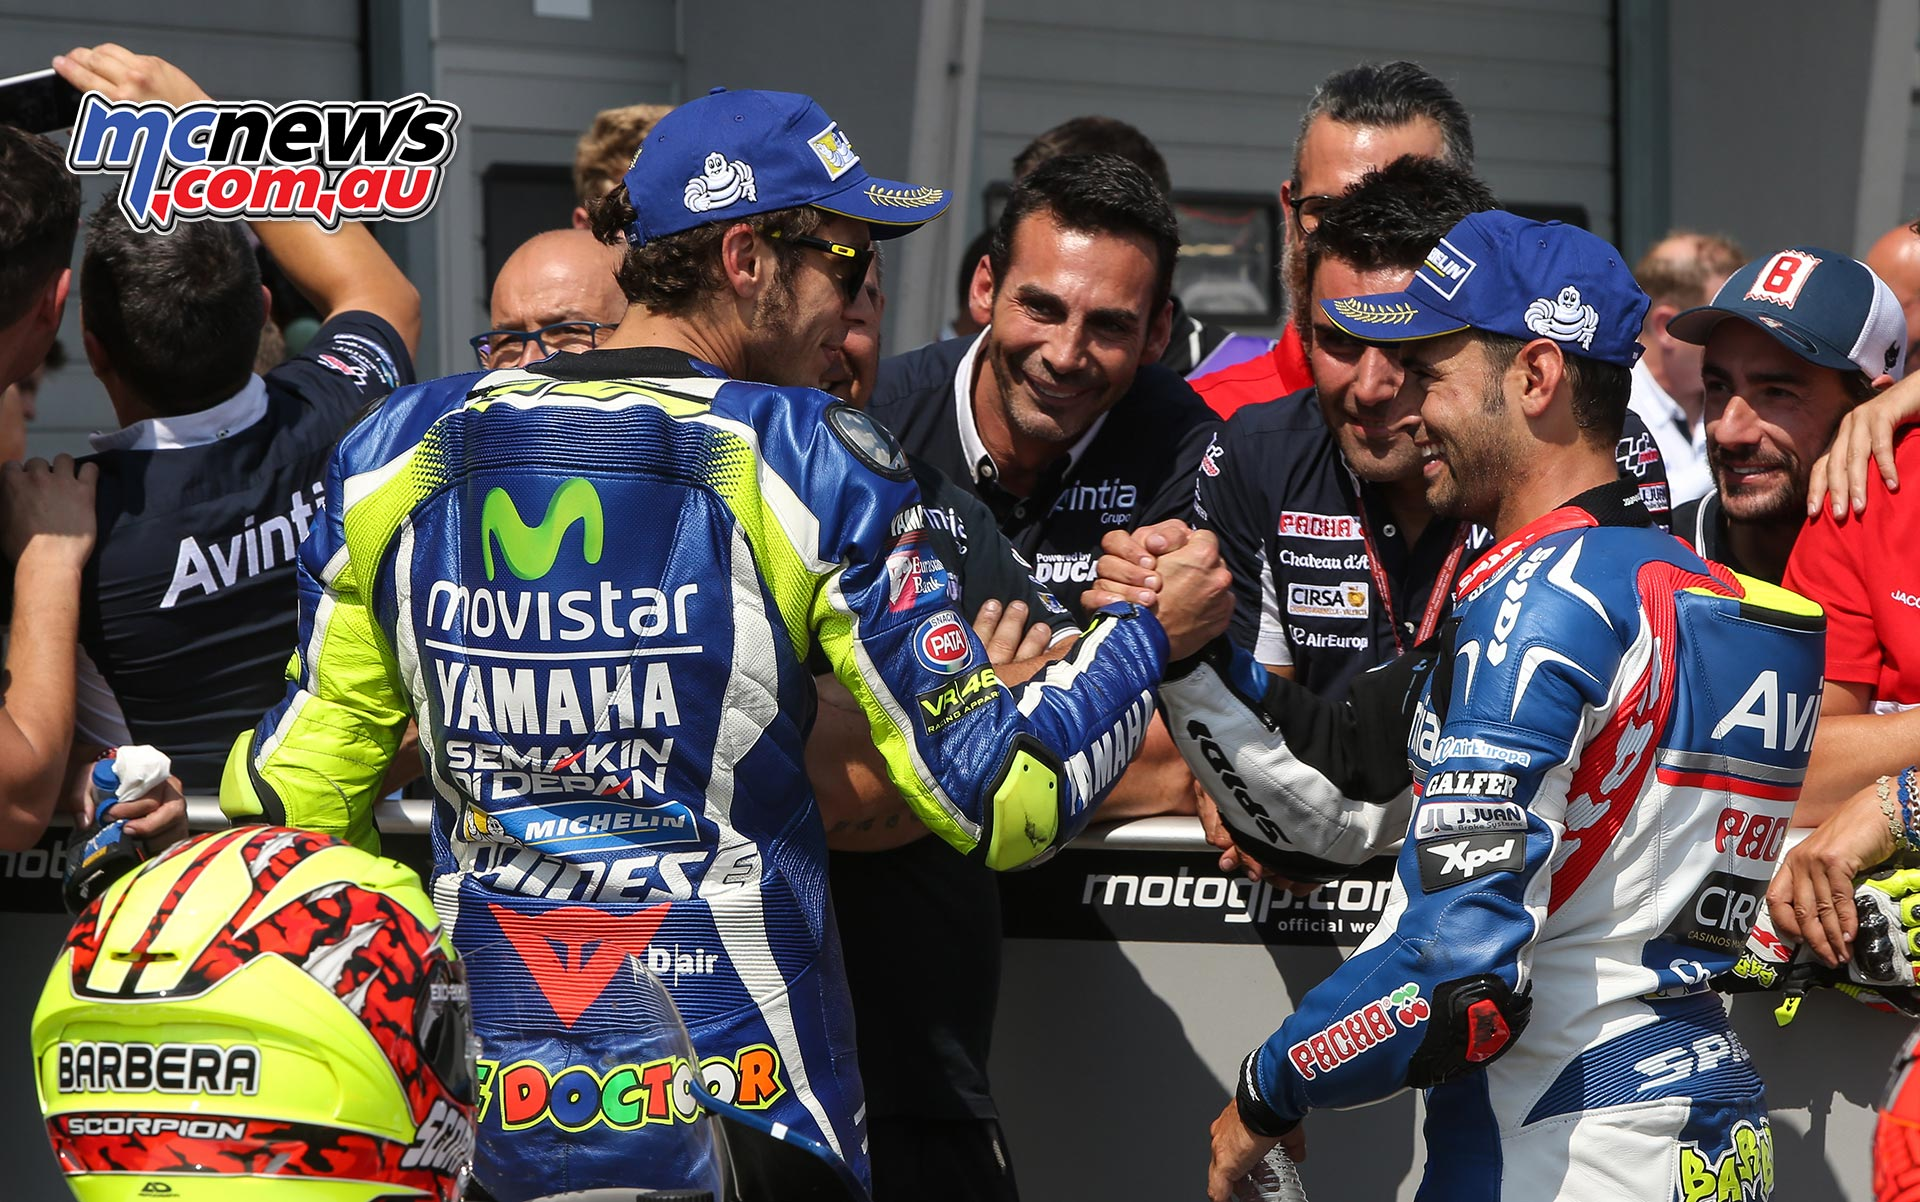 Hector Barbera and Valentino Rossi